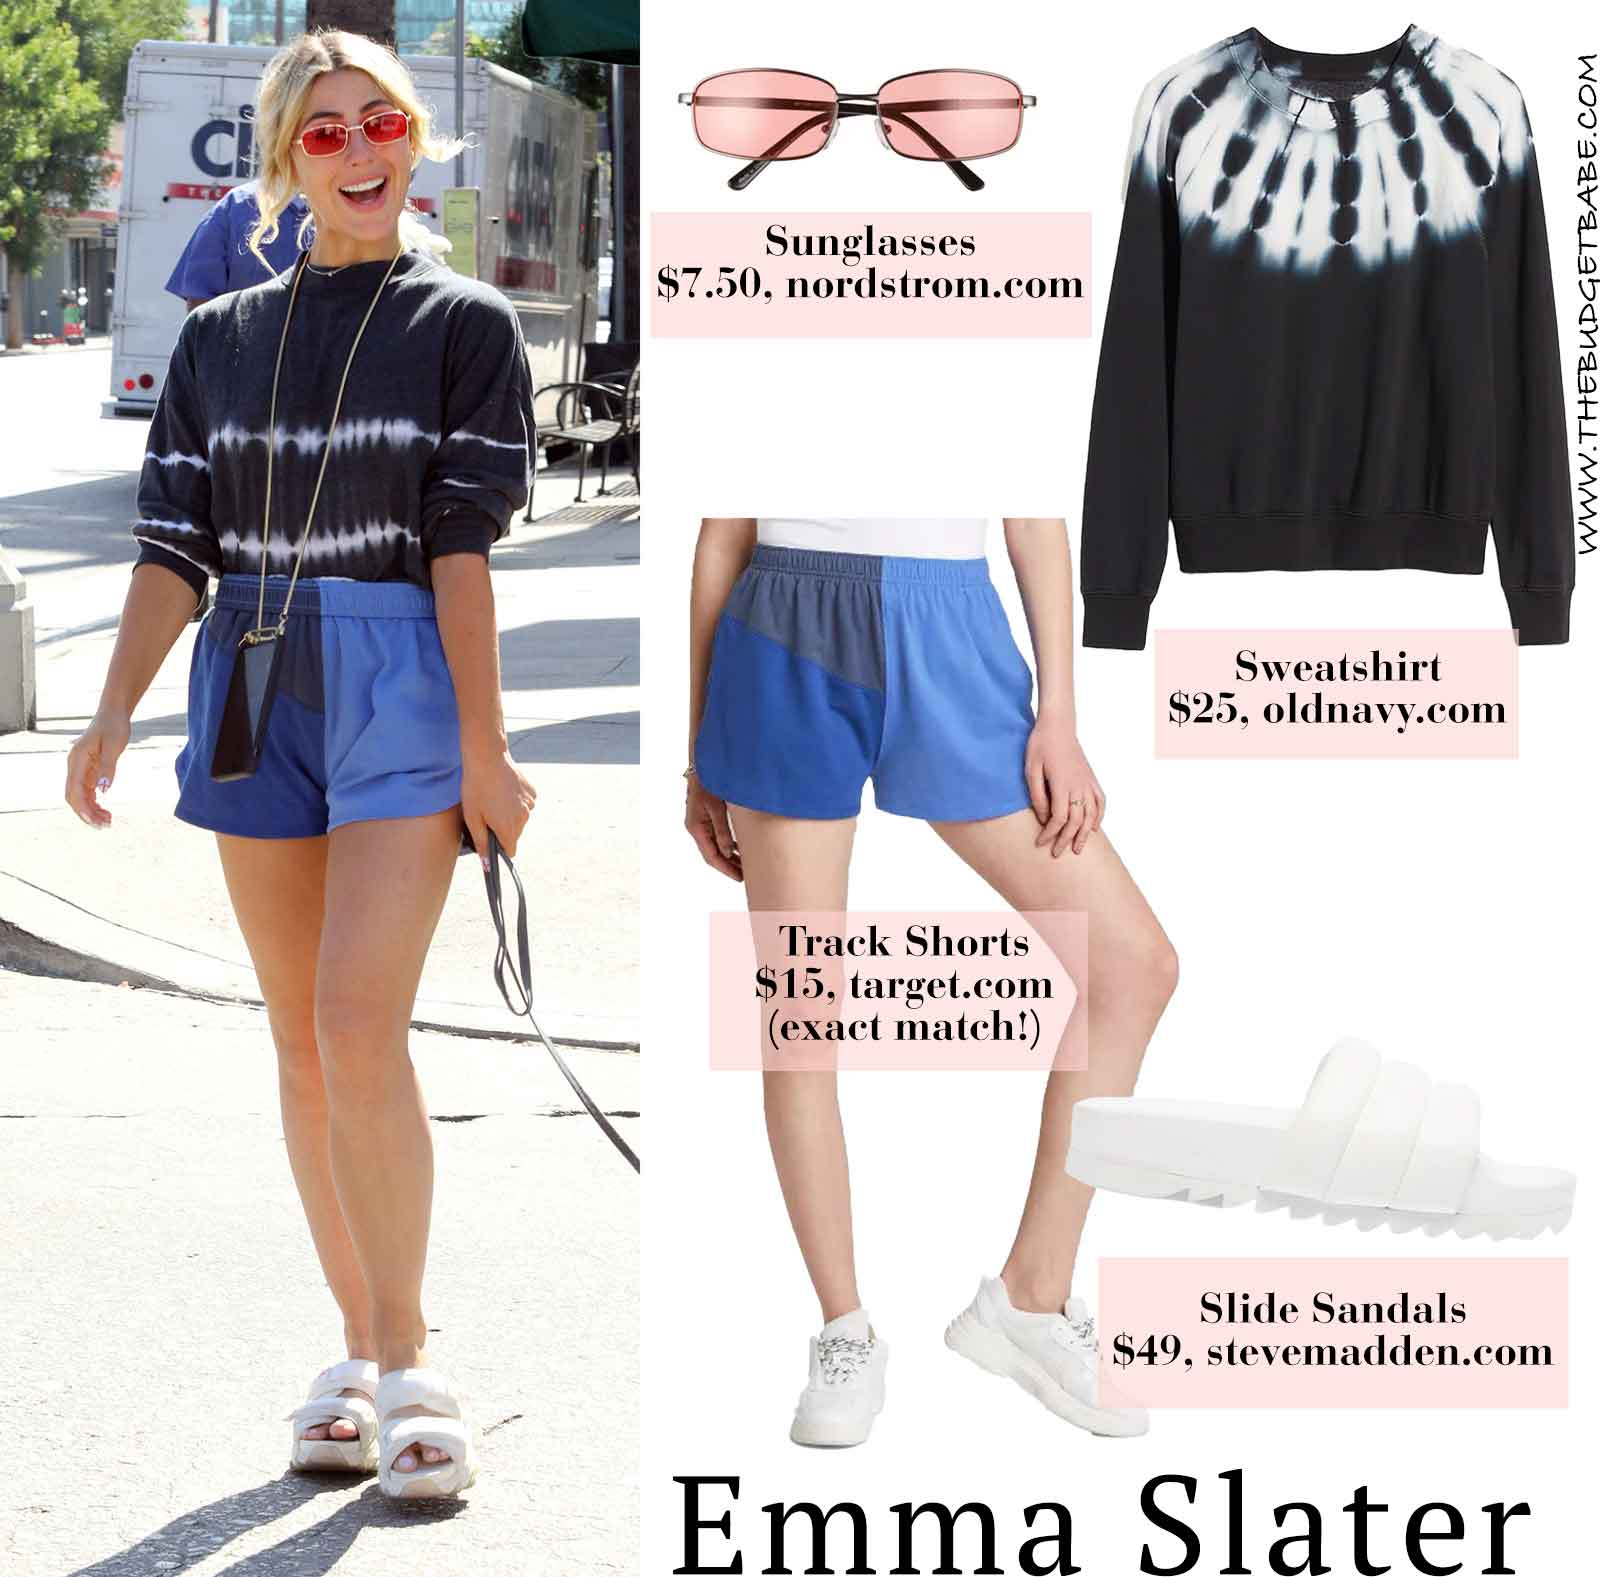 Emma Slater looks cute in Target shorts and a tie dye top while walking her pup!